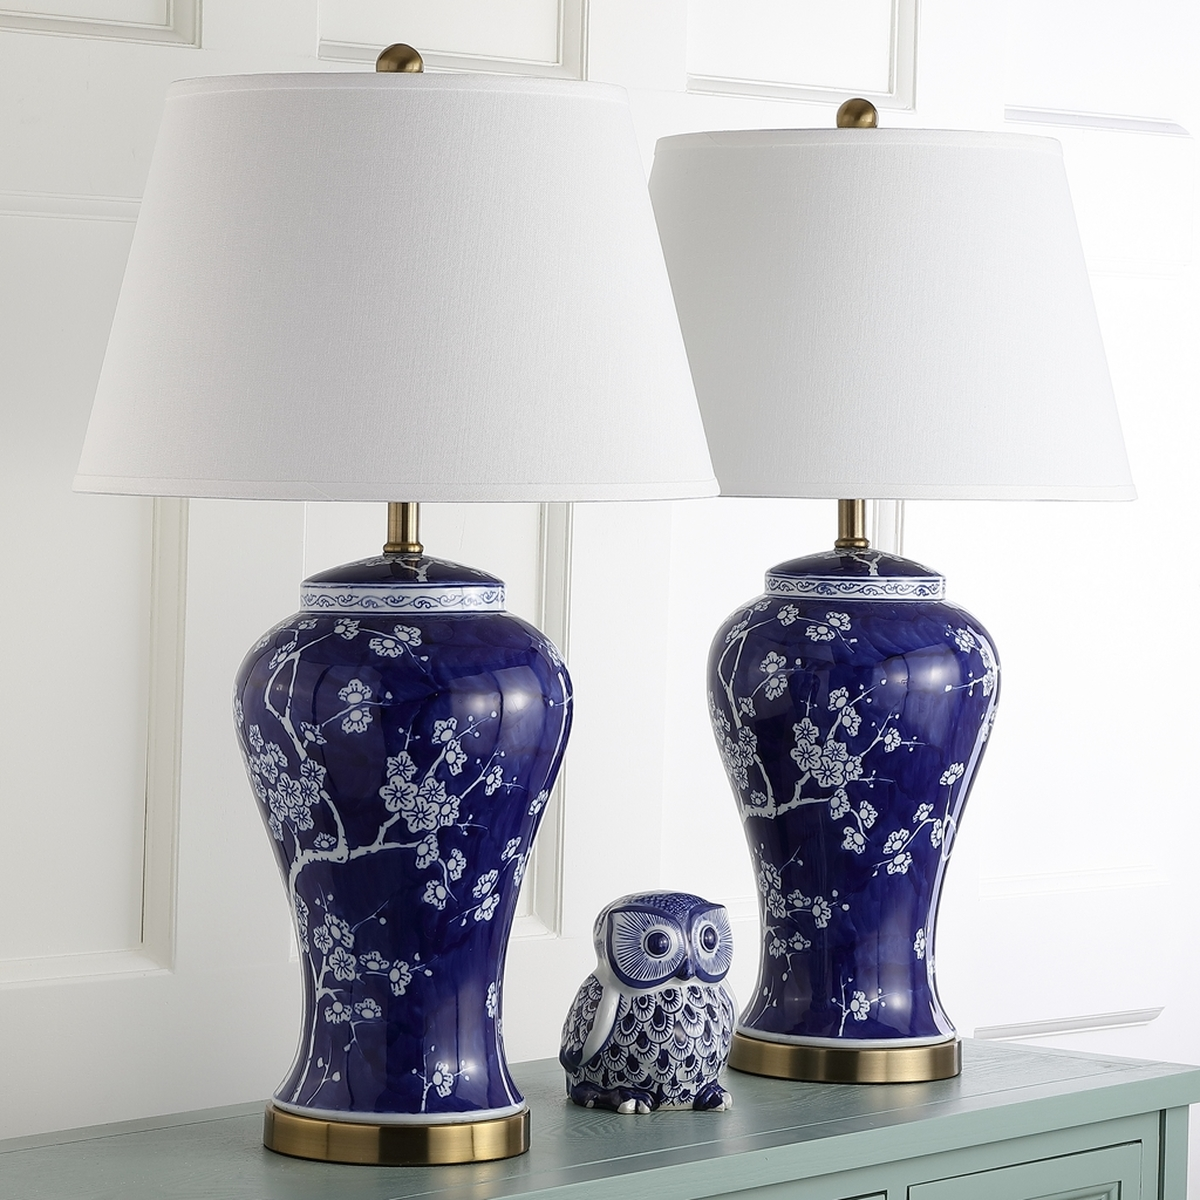 Lit4170c Set2 Table Lamps Lighting By Safavieh